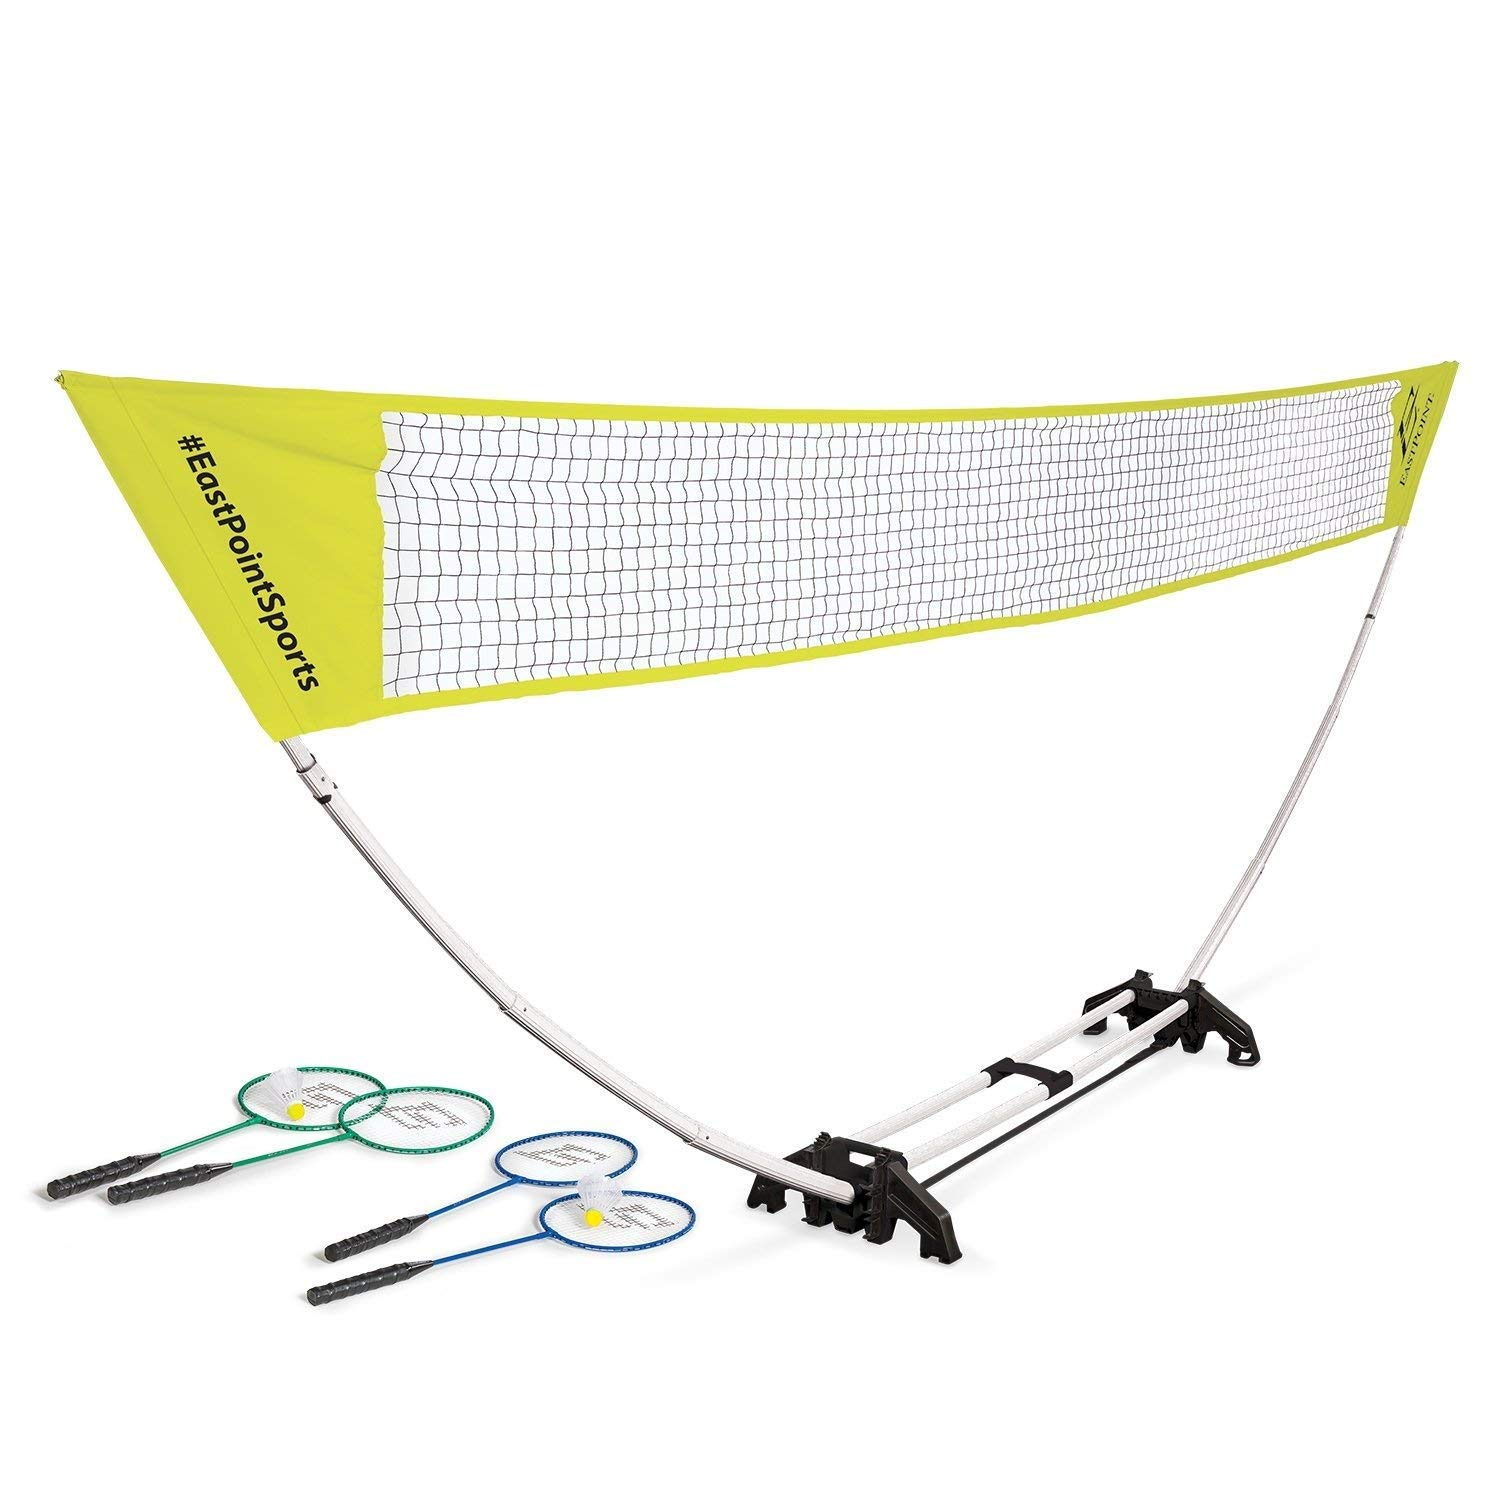 EastPoint Sports 5-FT Easy Setup Badminton Set East Point 1-1-41705-DS